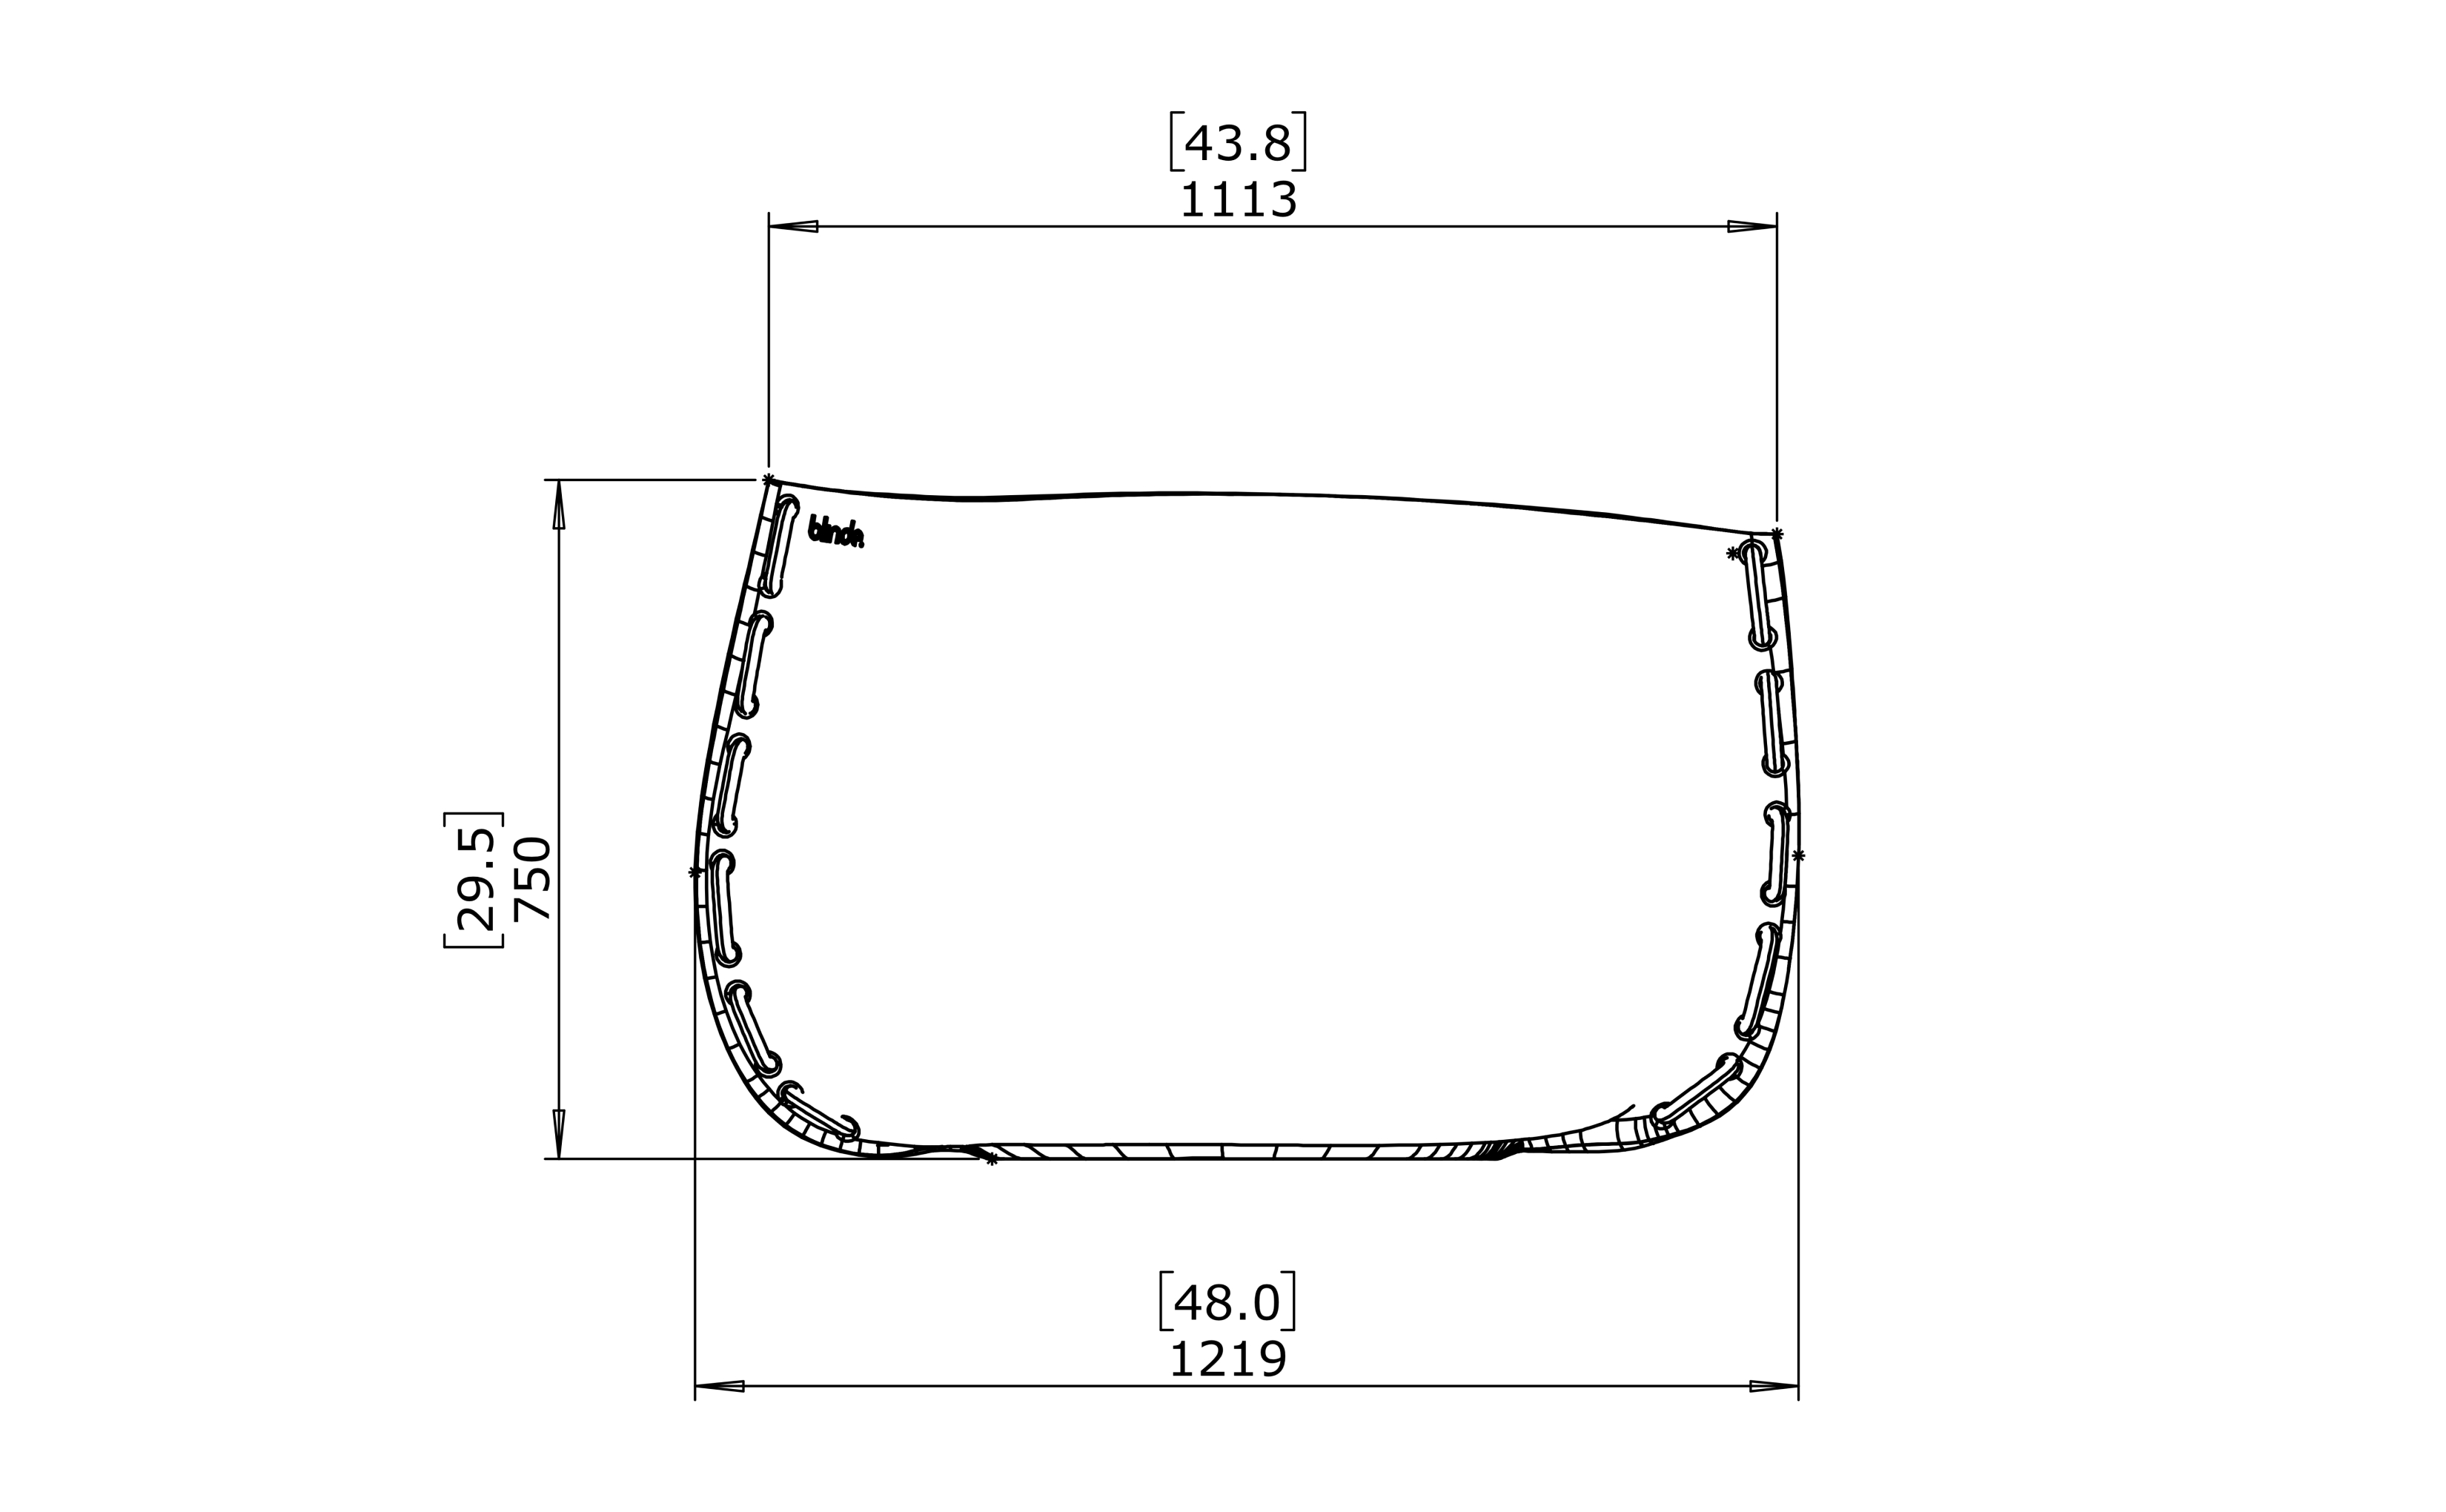 stitch-125-bld.1.p.sti.125-front-view-technical-drawing-by-blinde-design.jpg